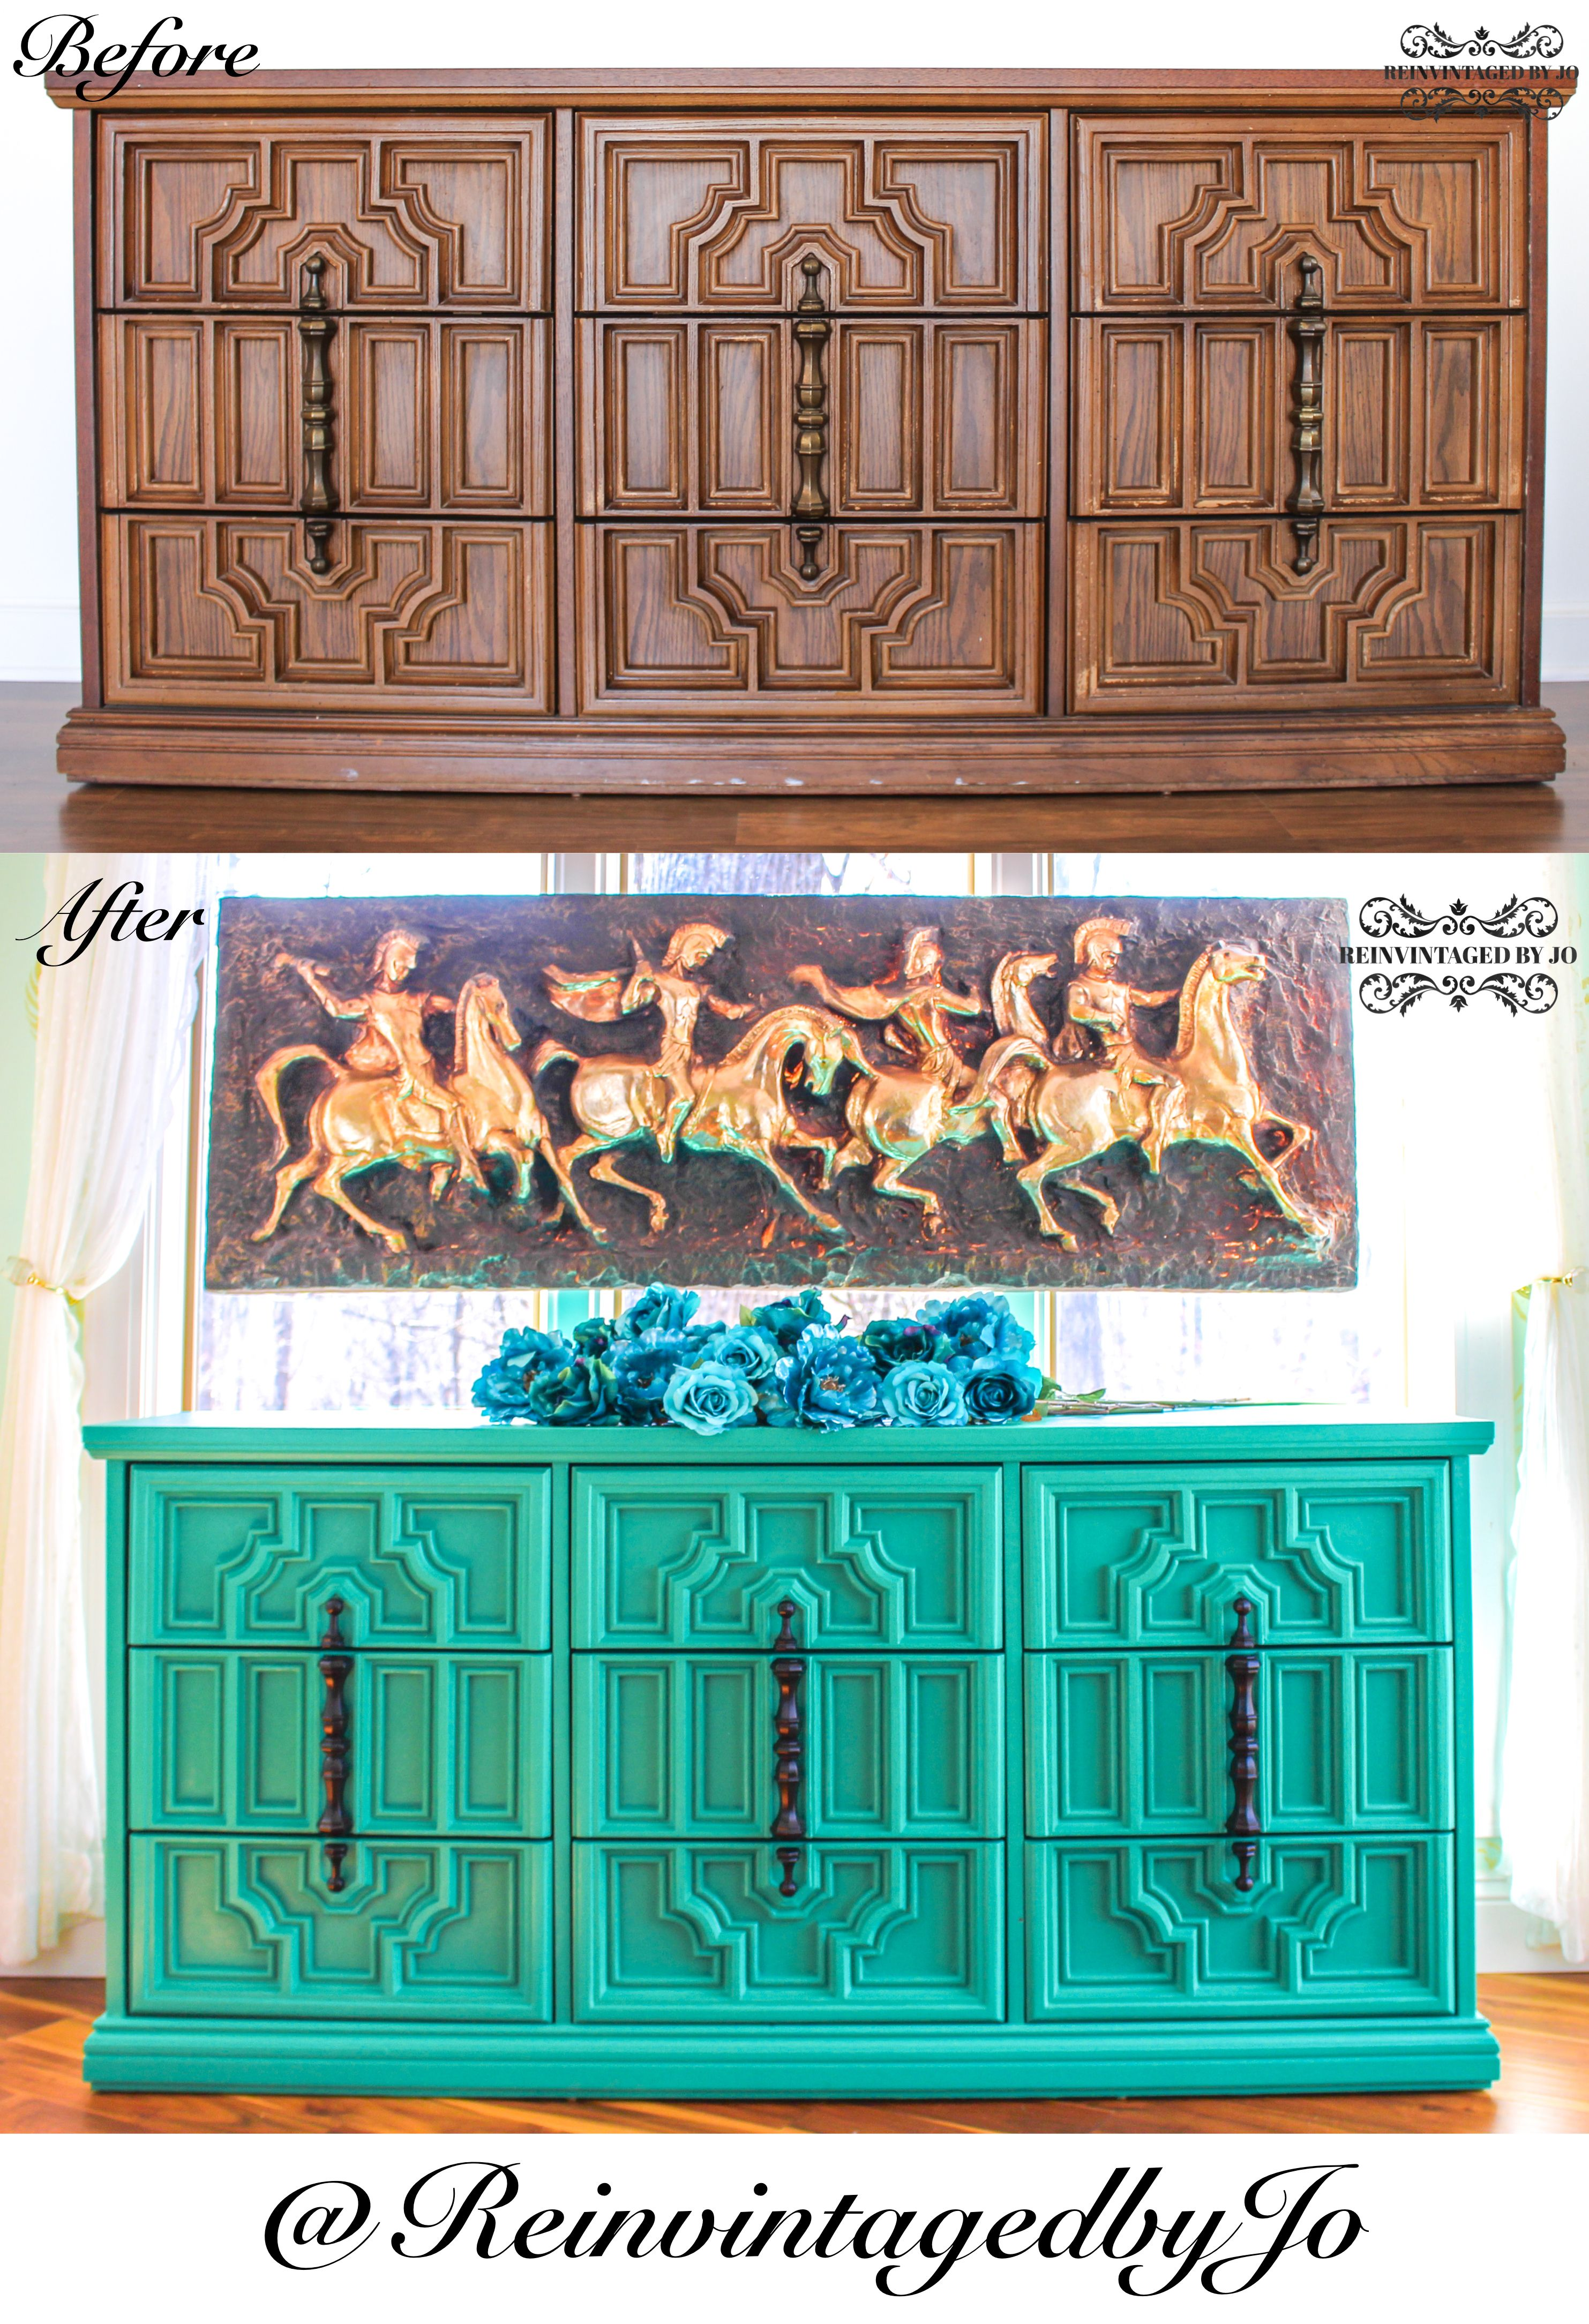 Reinvintaged by Jo handpainted nine drawer vintage Bassett dresser